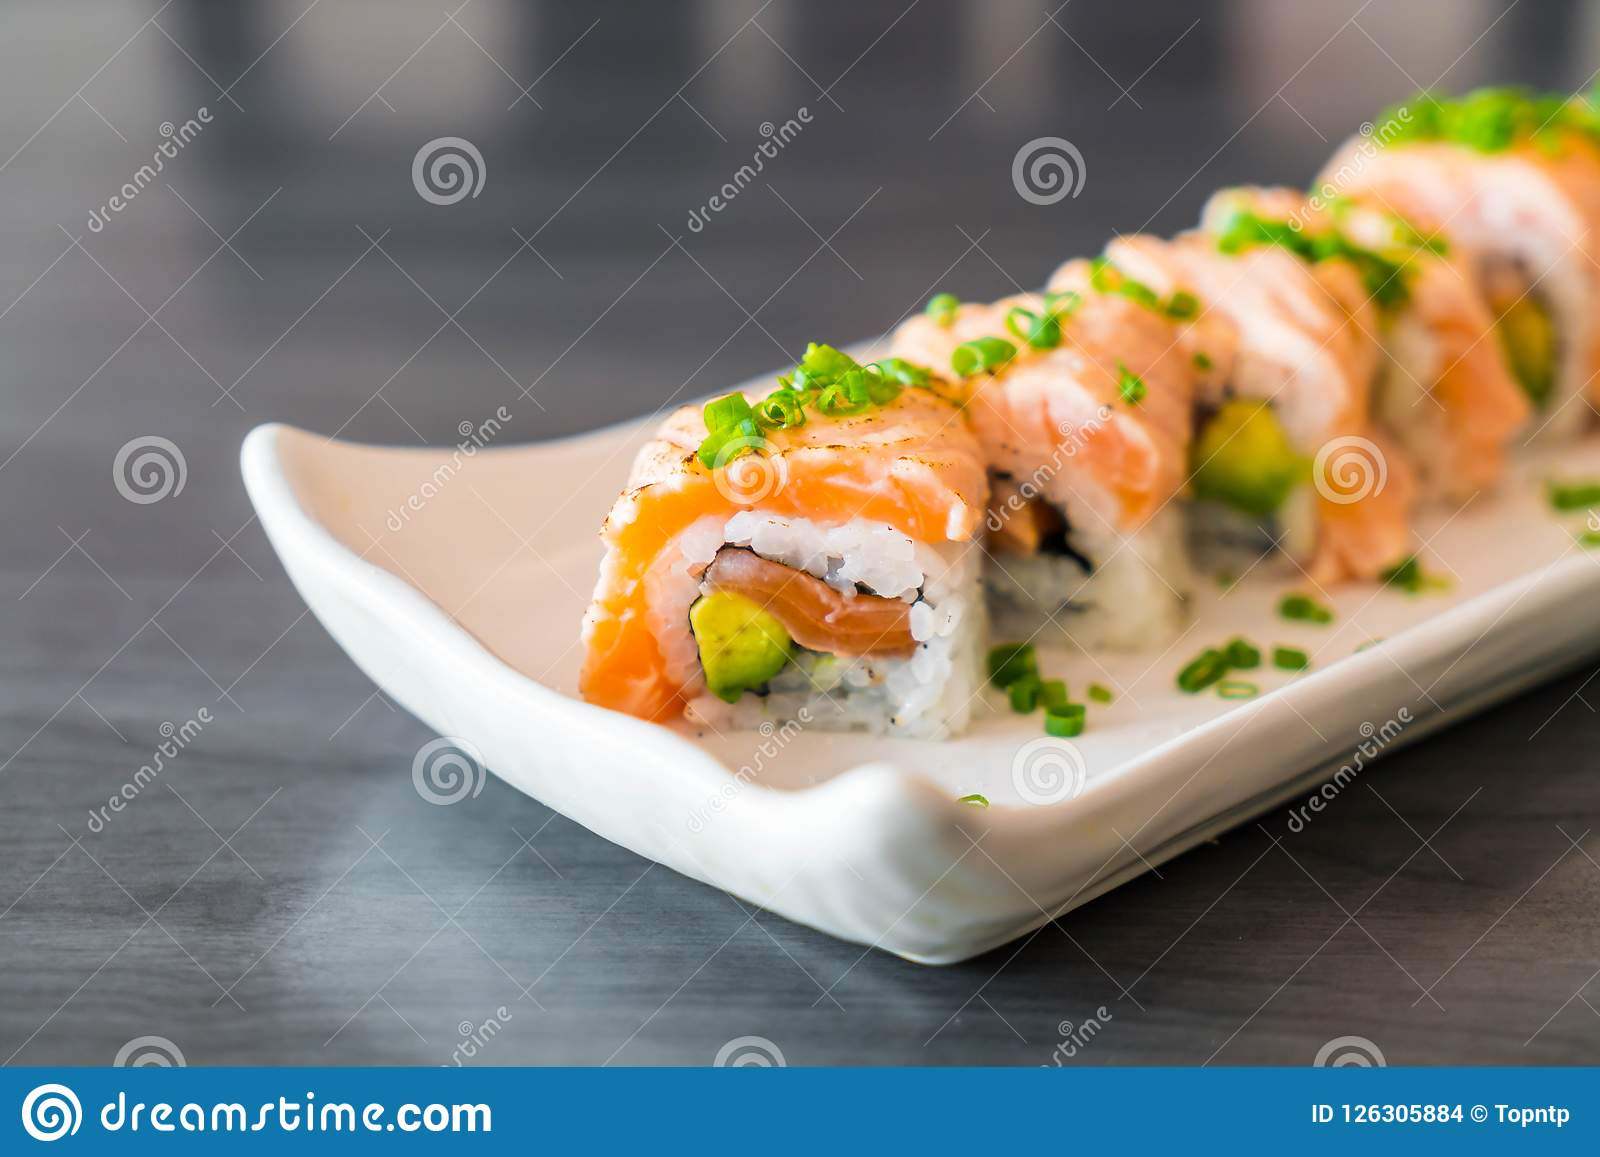 Grilled Salmon Sushi Roll Stock Photo Image Of Cuisine 126305884